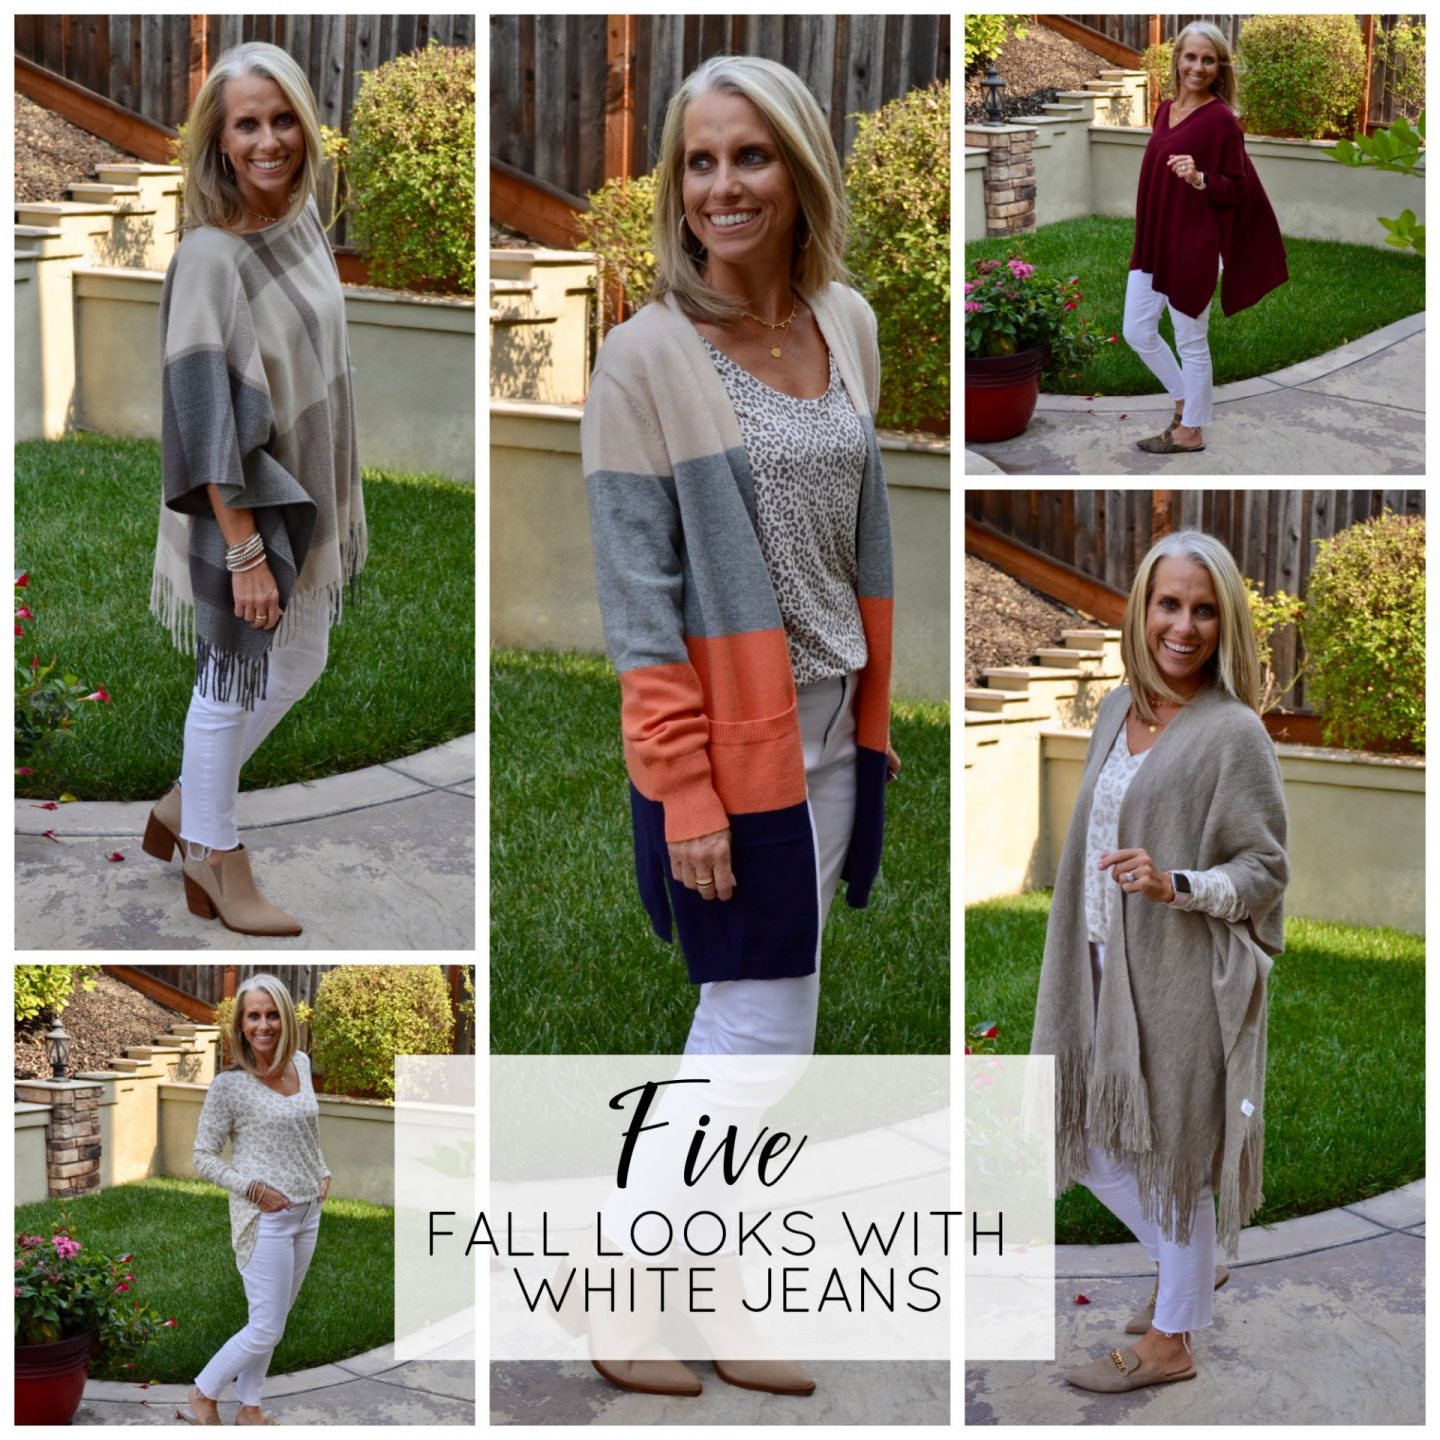 FIVE FALL LOOKS WITH WHITE JEANS